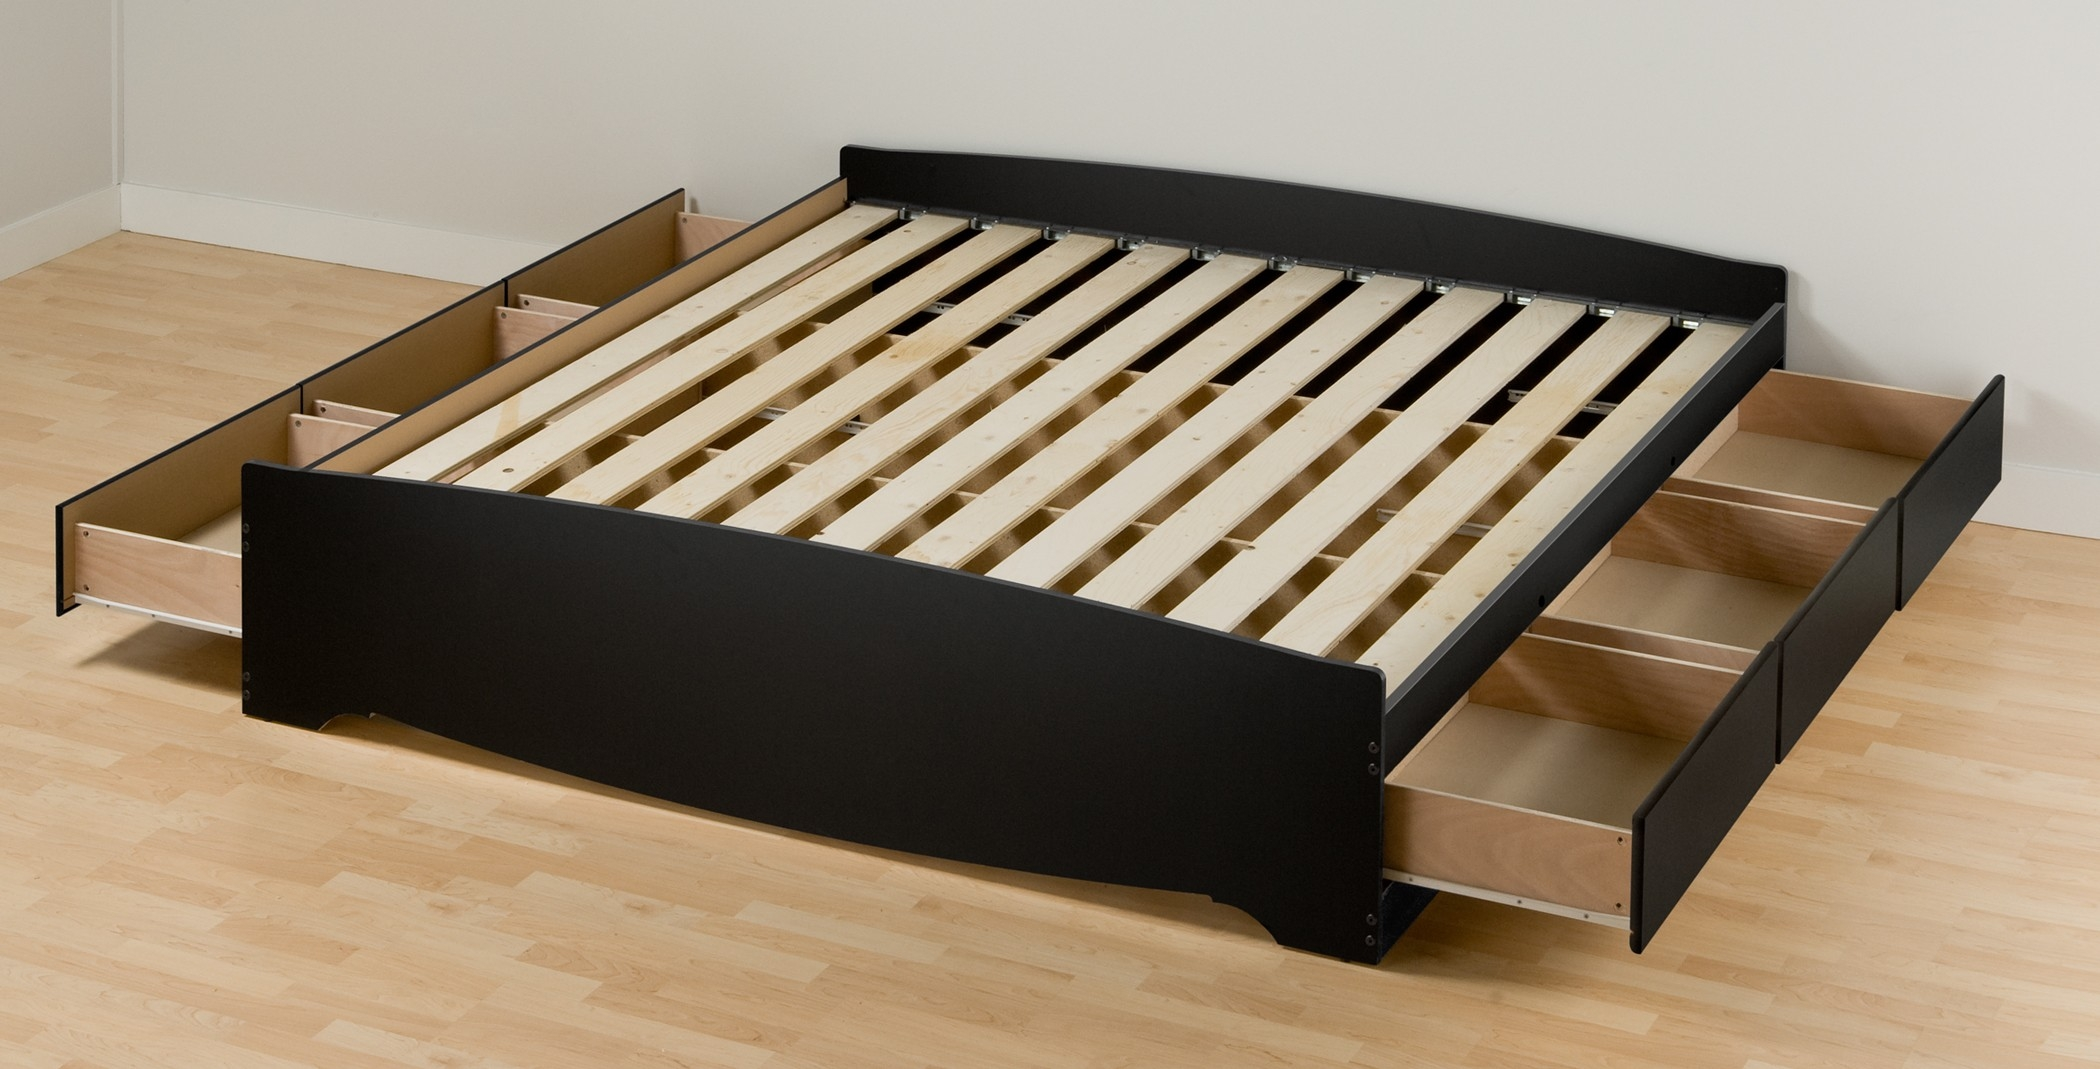 Eastern King Bed Frame With Storageevolution king size bed frame with drawers msexta